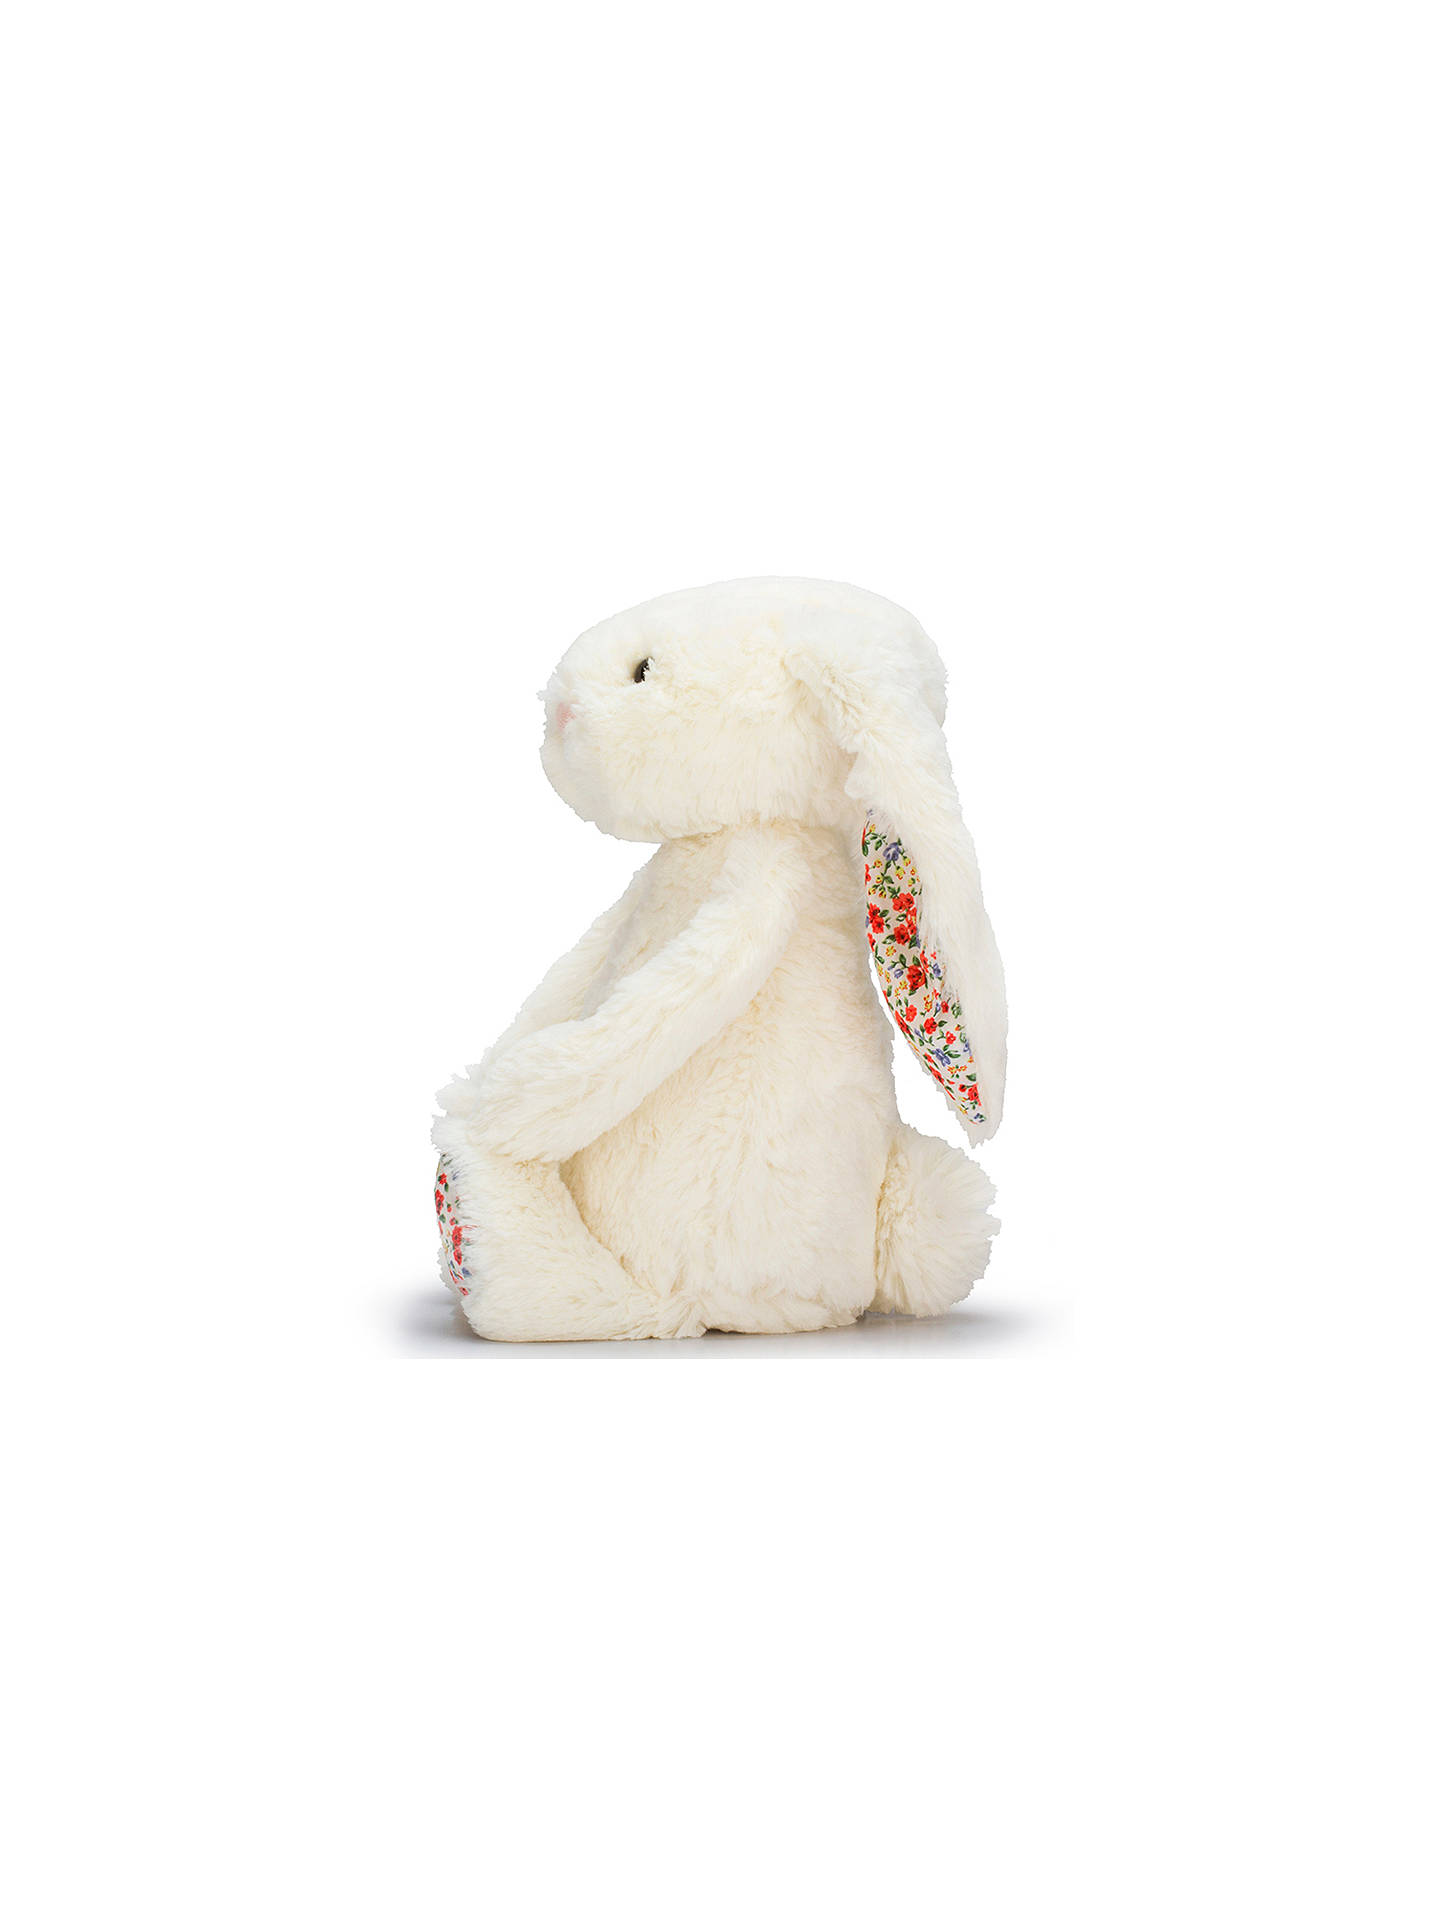 BuyJellycat Blossom Bunny Soft Toy, Medium, Cream Online at johnlewis.com